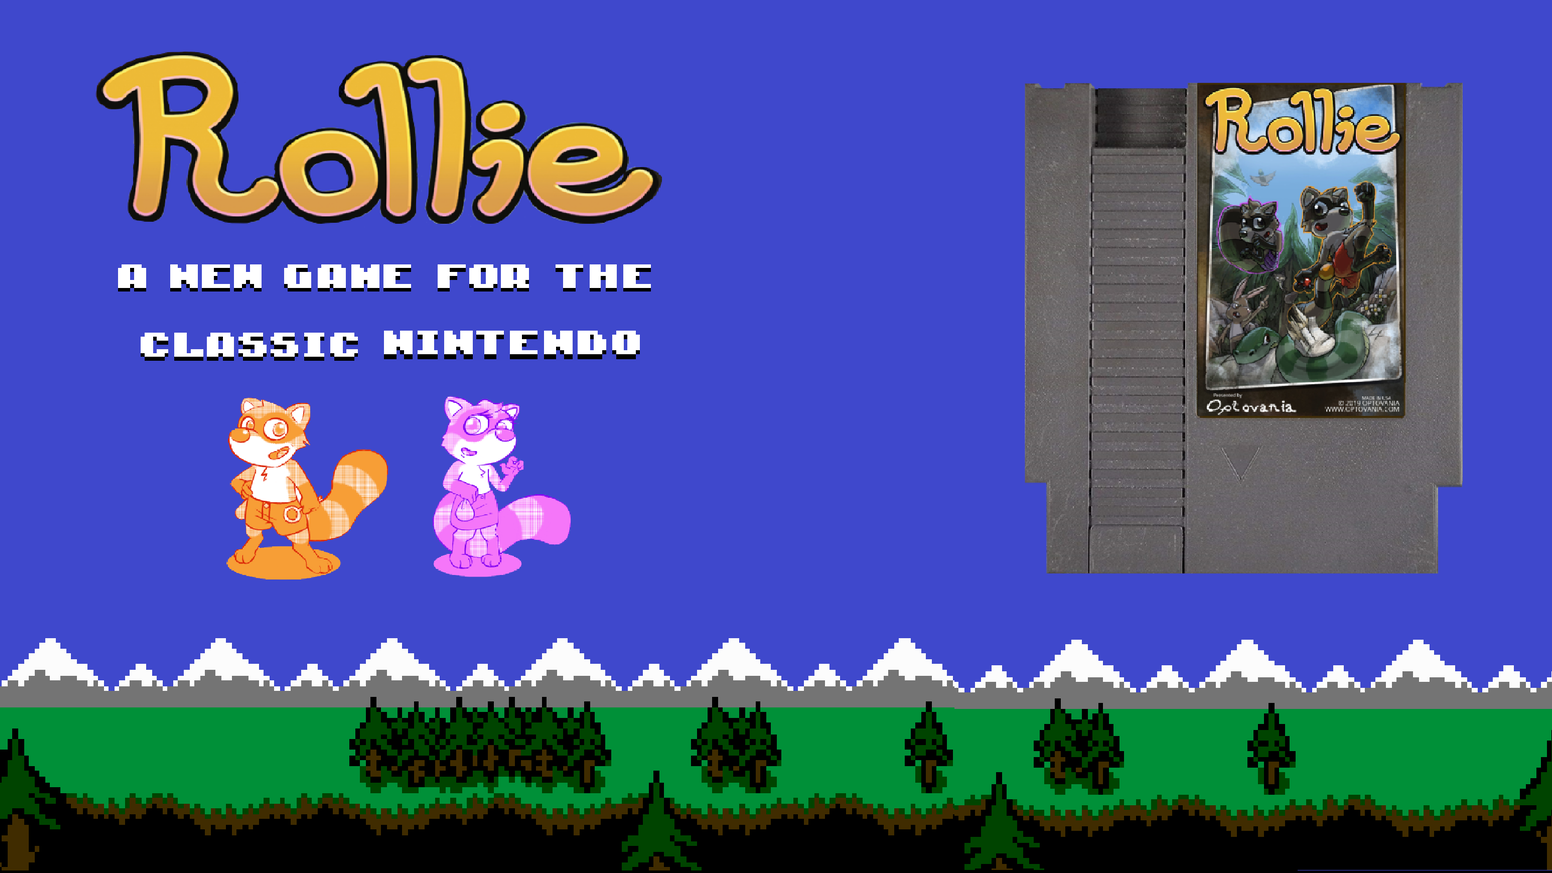 A family friendly platformer for the NES starring Rollie, the rolling raccoon